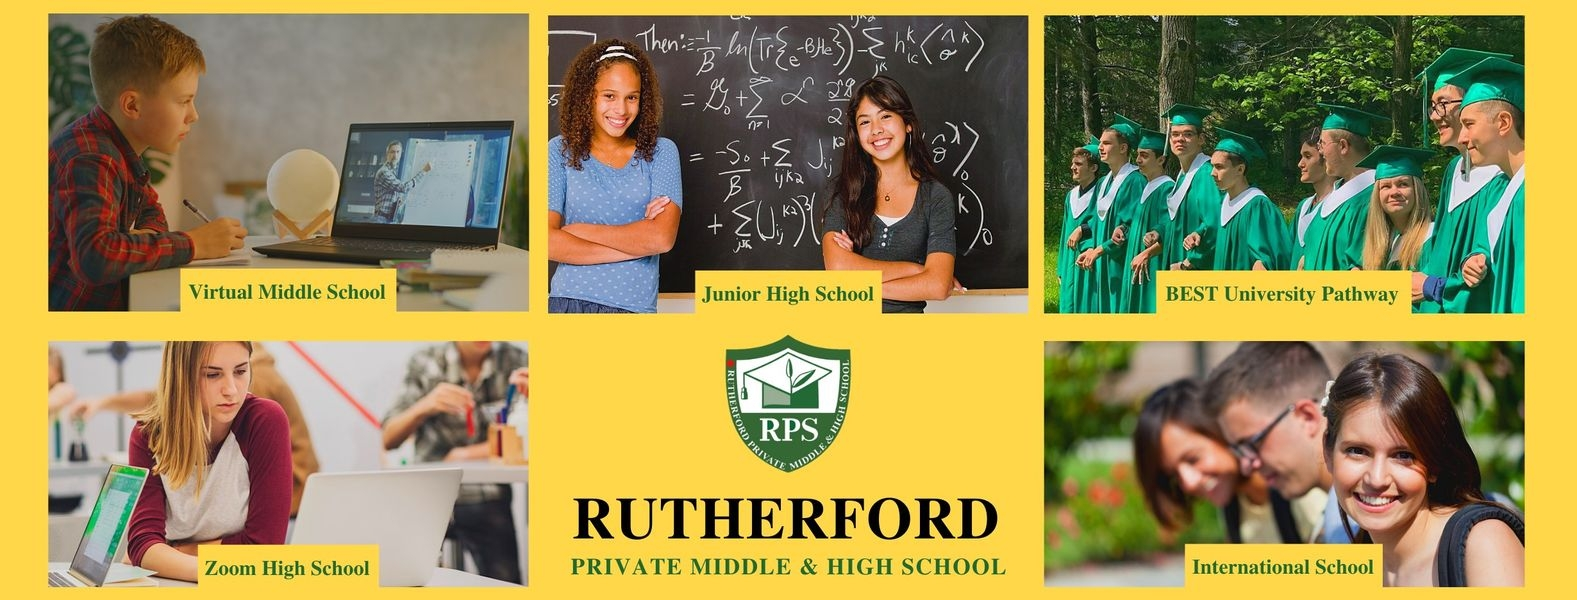 Rutherfordschool (@rutherfordschool) Cover Image